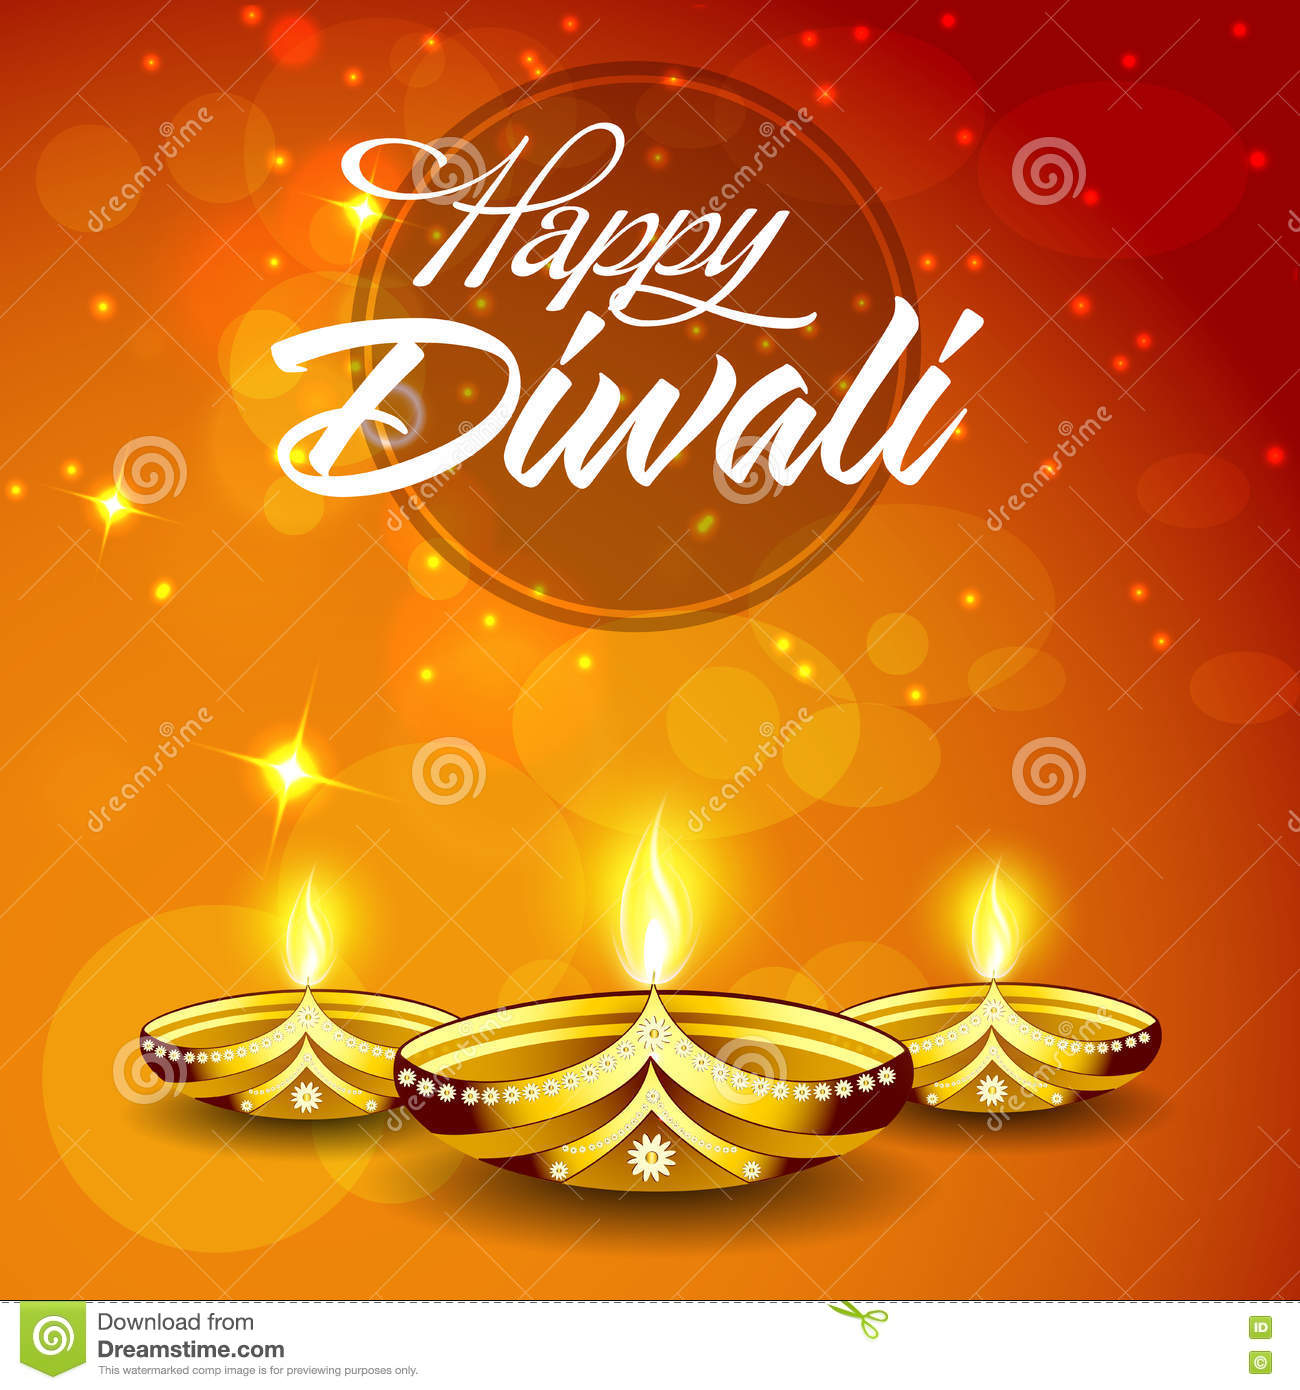 Greeting Card For Happy Diwali Celebration Stock Illustration